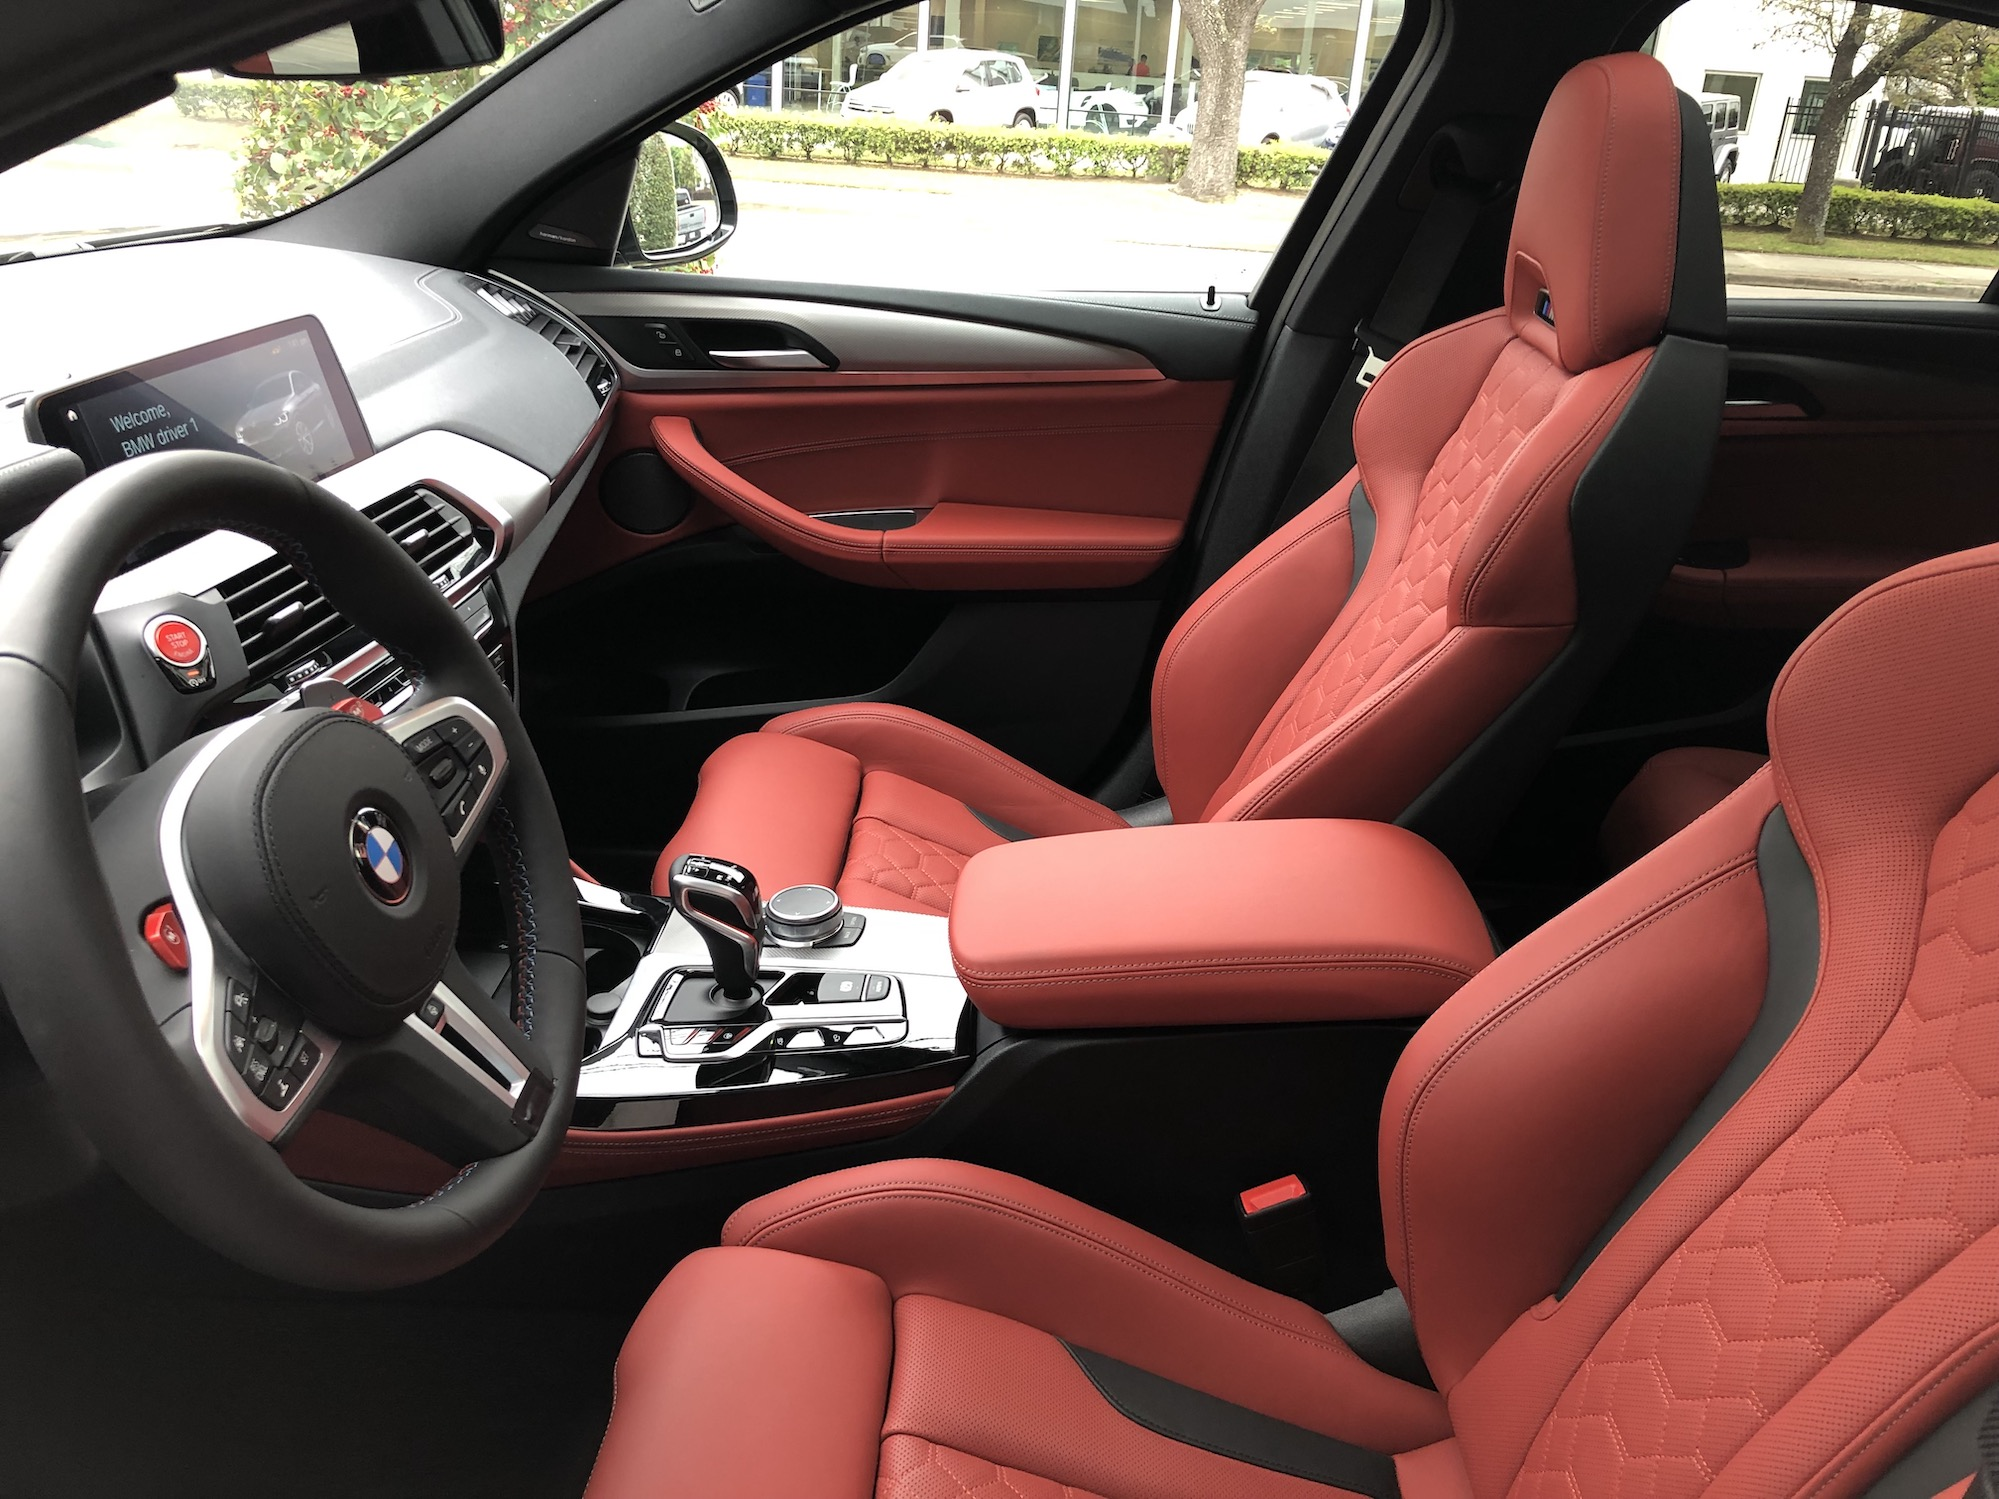 Latest X3m And X4m Pics From Houston With Sakhir Orange Interior